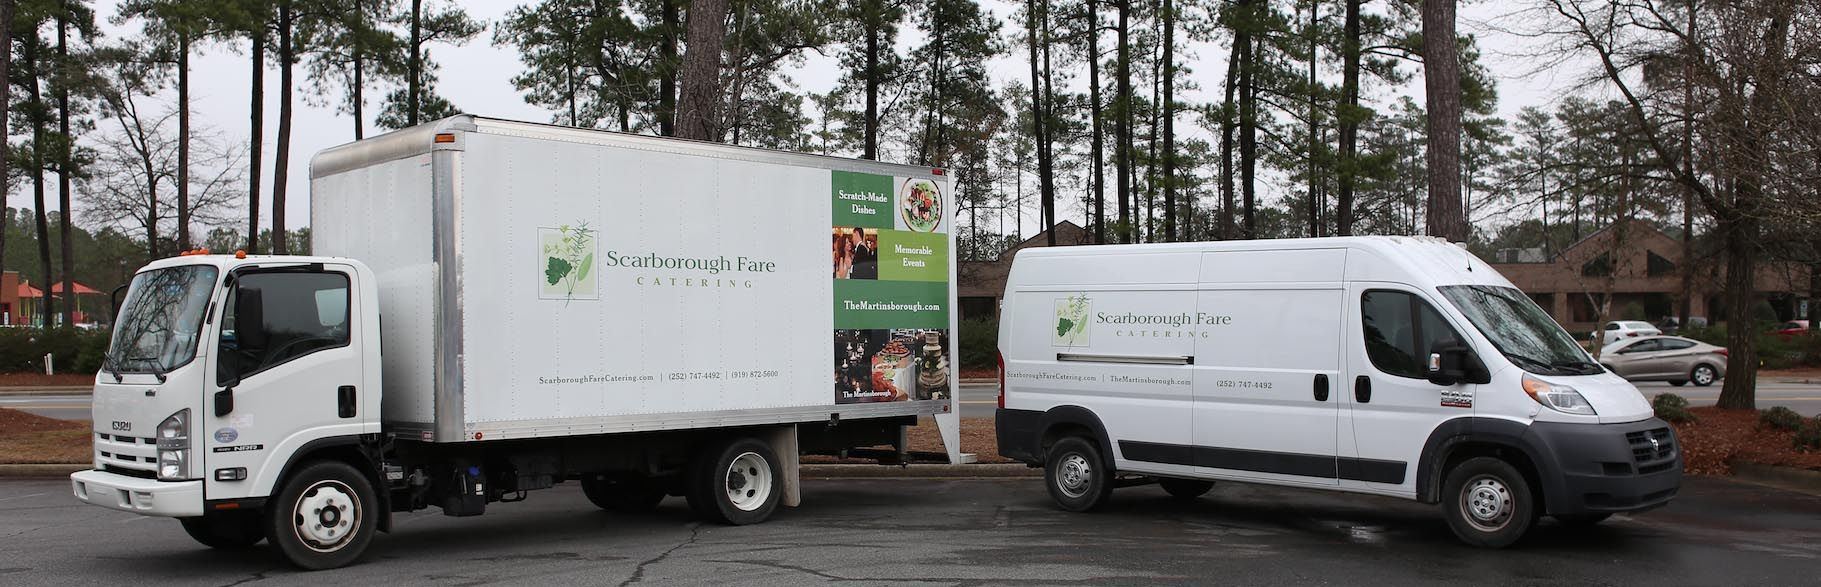 Side view of Scarborough Fare Catering van graphics